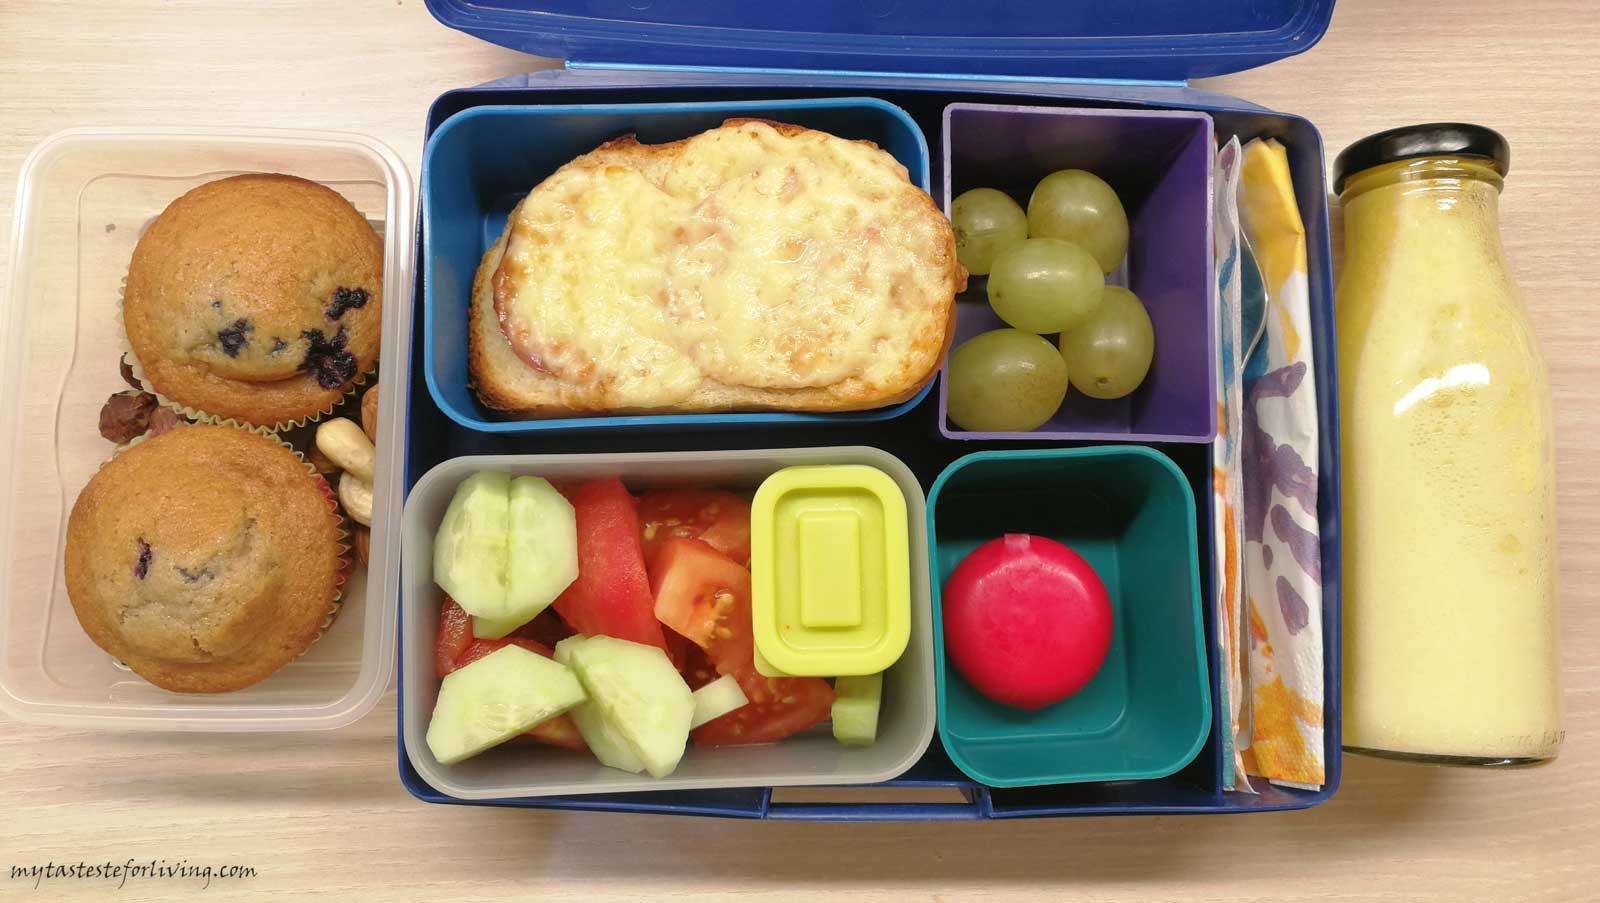 5 Ideas for homemade food in a lunchbox